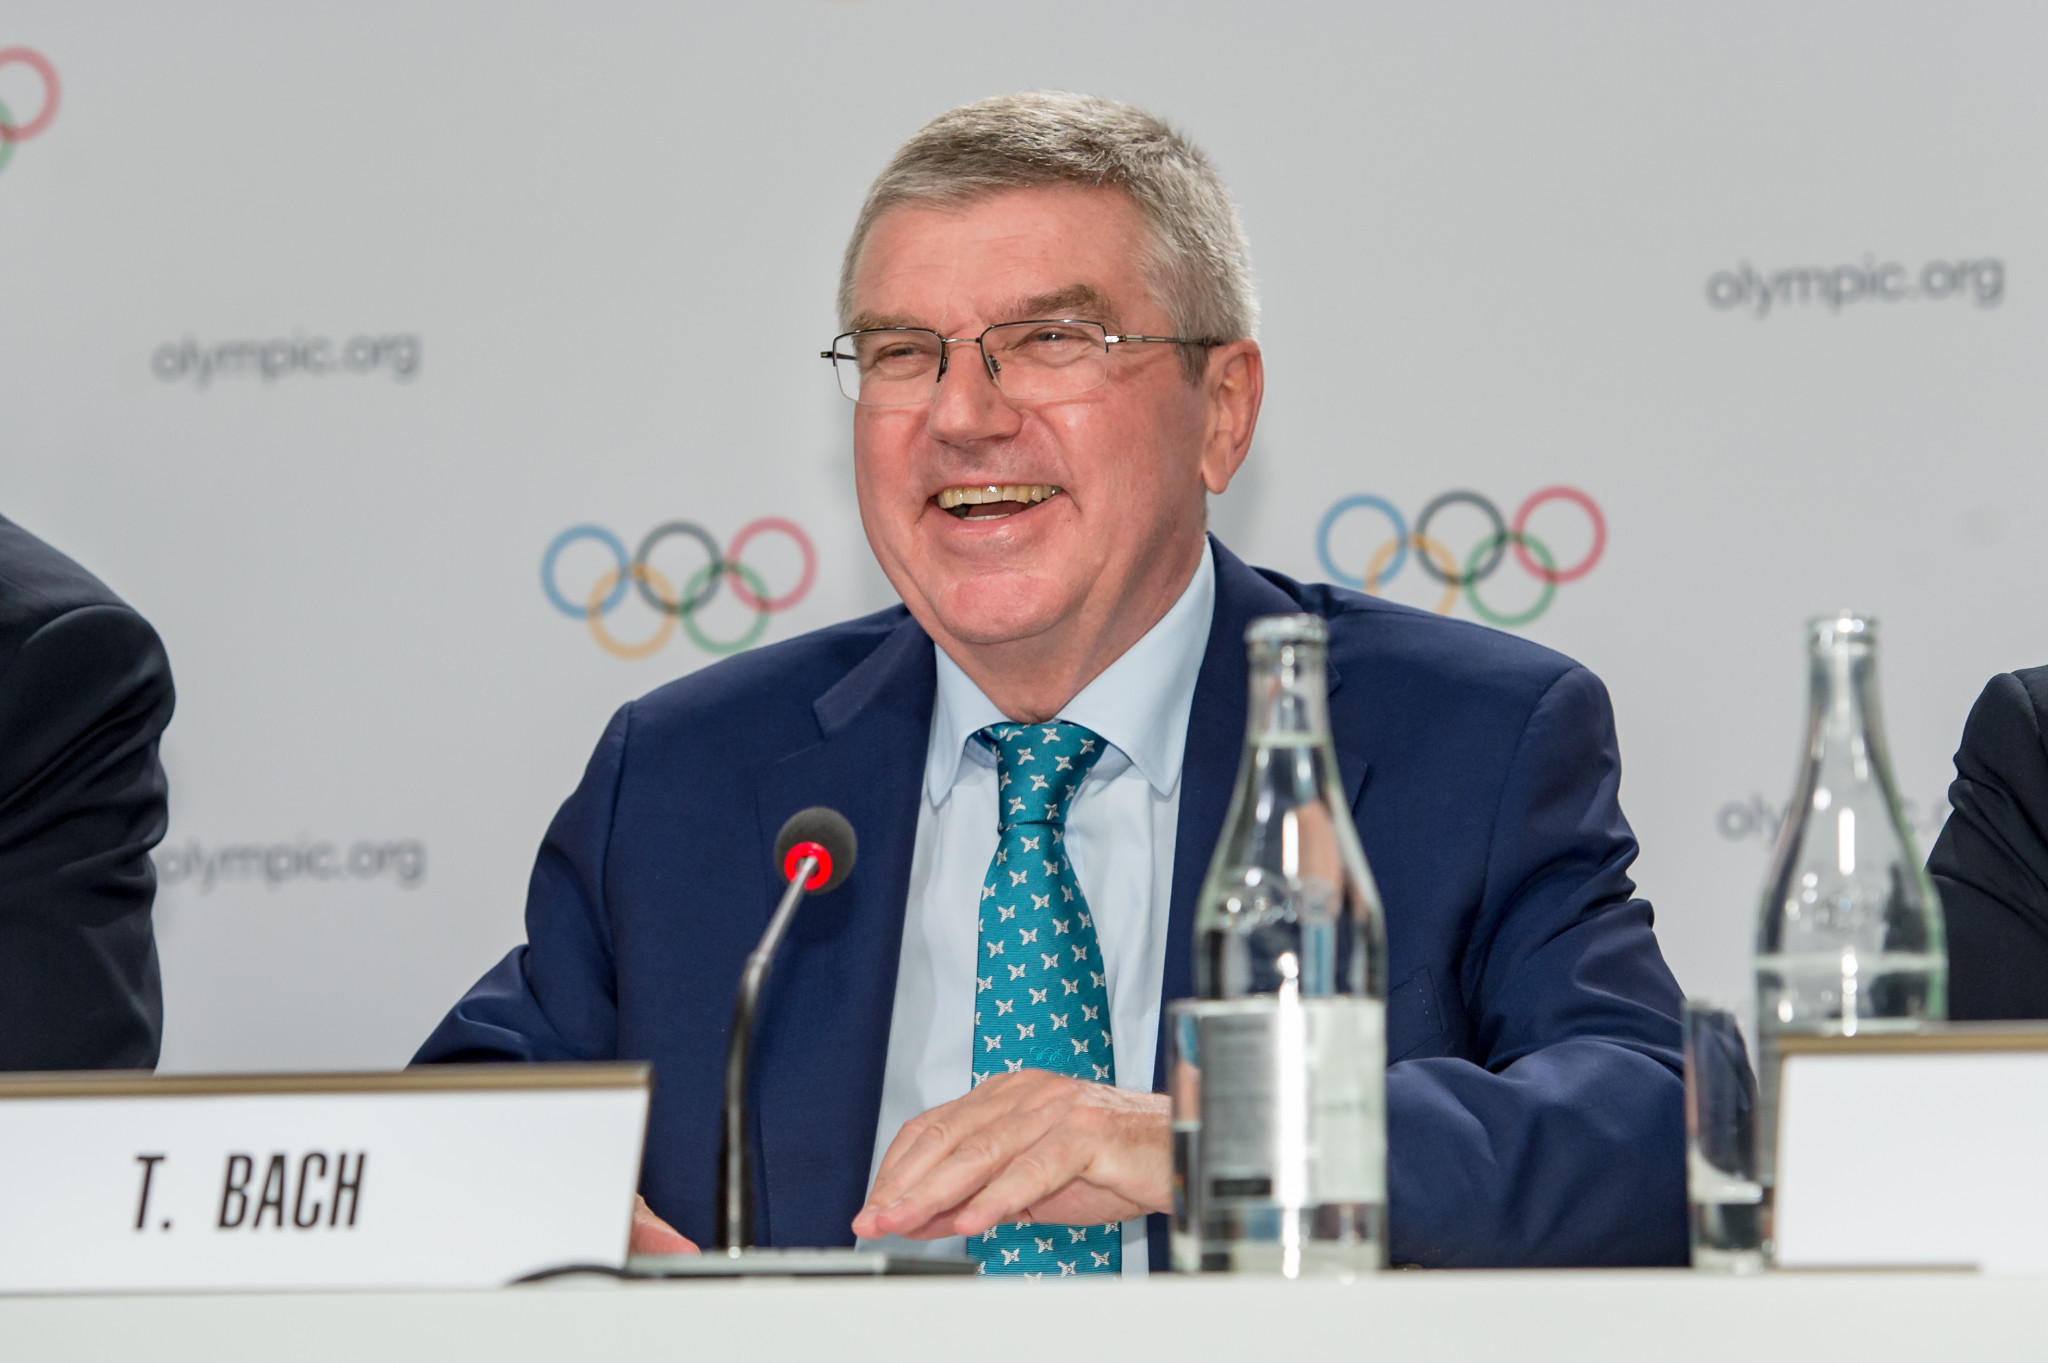 IOC President Thomas Bach opened the door for the heads of the IAAF and FIFA to be elected as members next year ©Getty Images